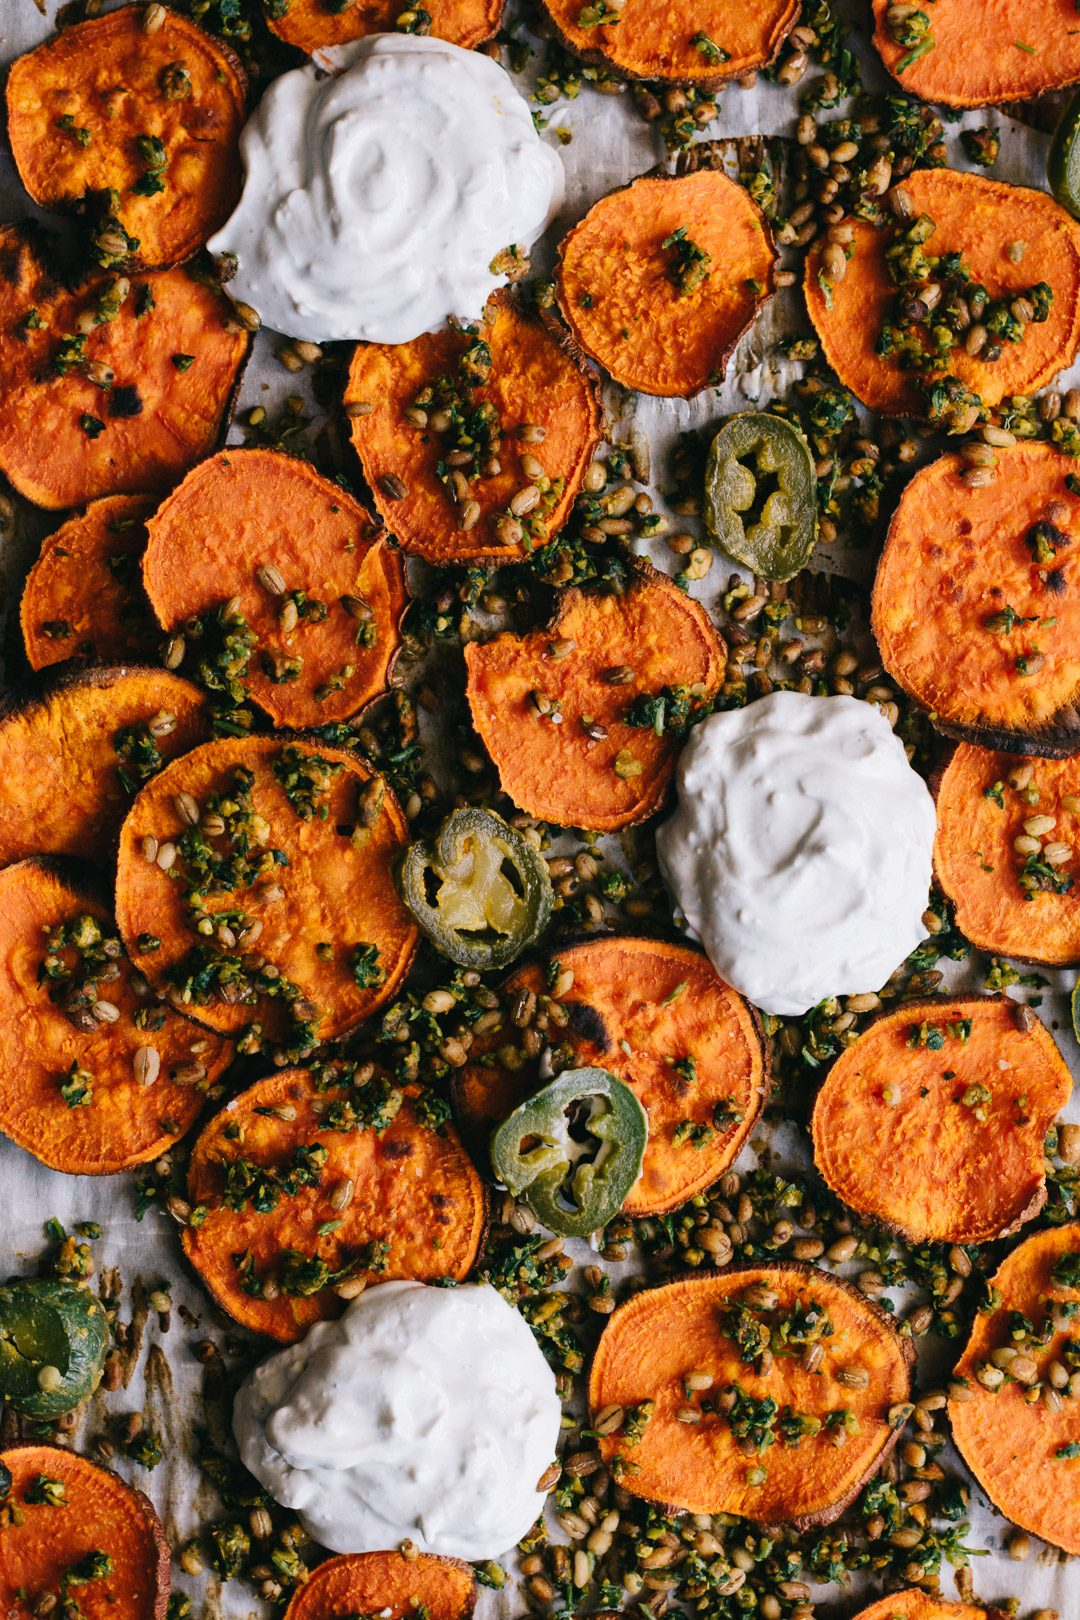 Overhead shot of three dollops of sour cream blue cheese dip on a parchment paper covered baking sheet surrounded by sweet potato crisps, gremolata, barley, and jalapeño slices.